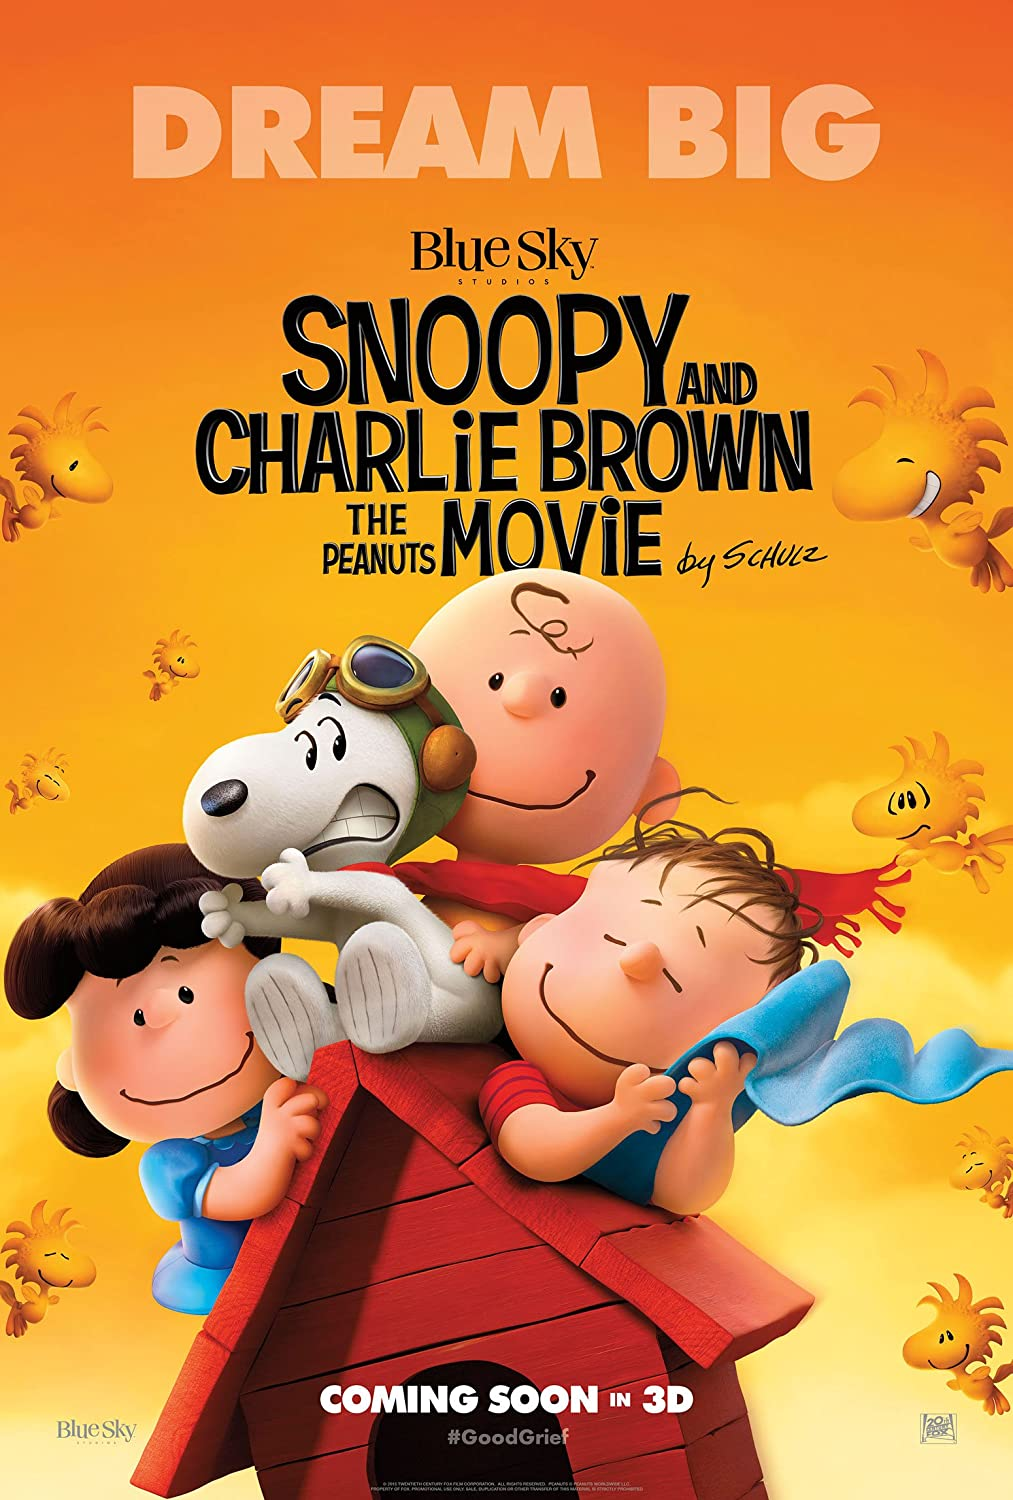 WMG The Peanuts Movie - Poster: (24 x 36 Inches) - Glossy Photo Paper (Thick 8 Mil), Snoopy, Charlie Brown